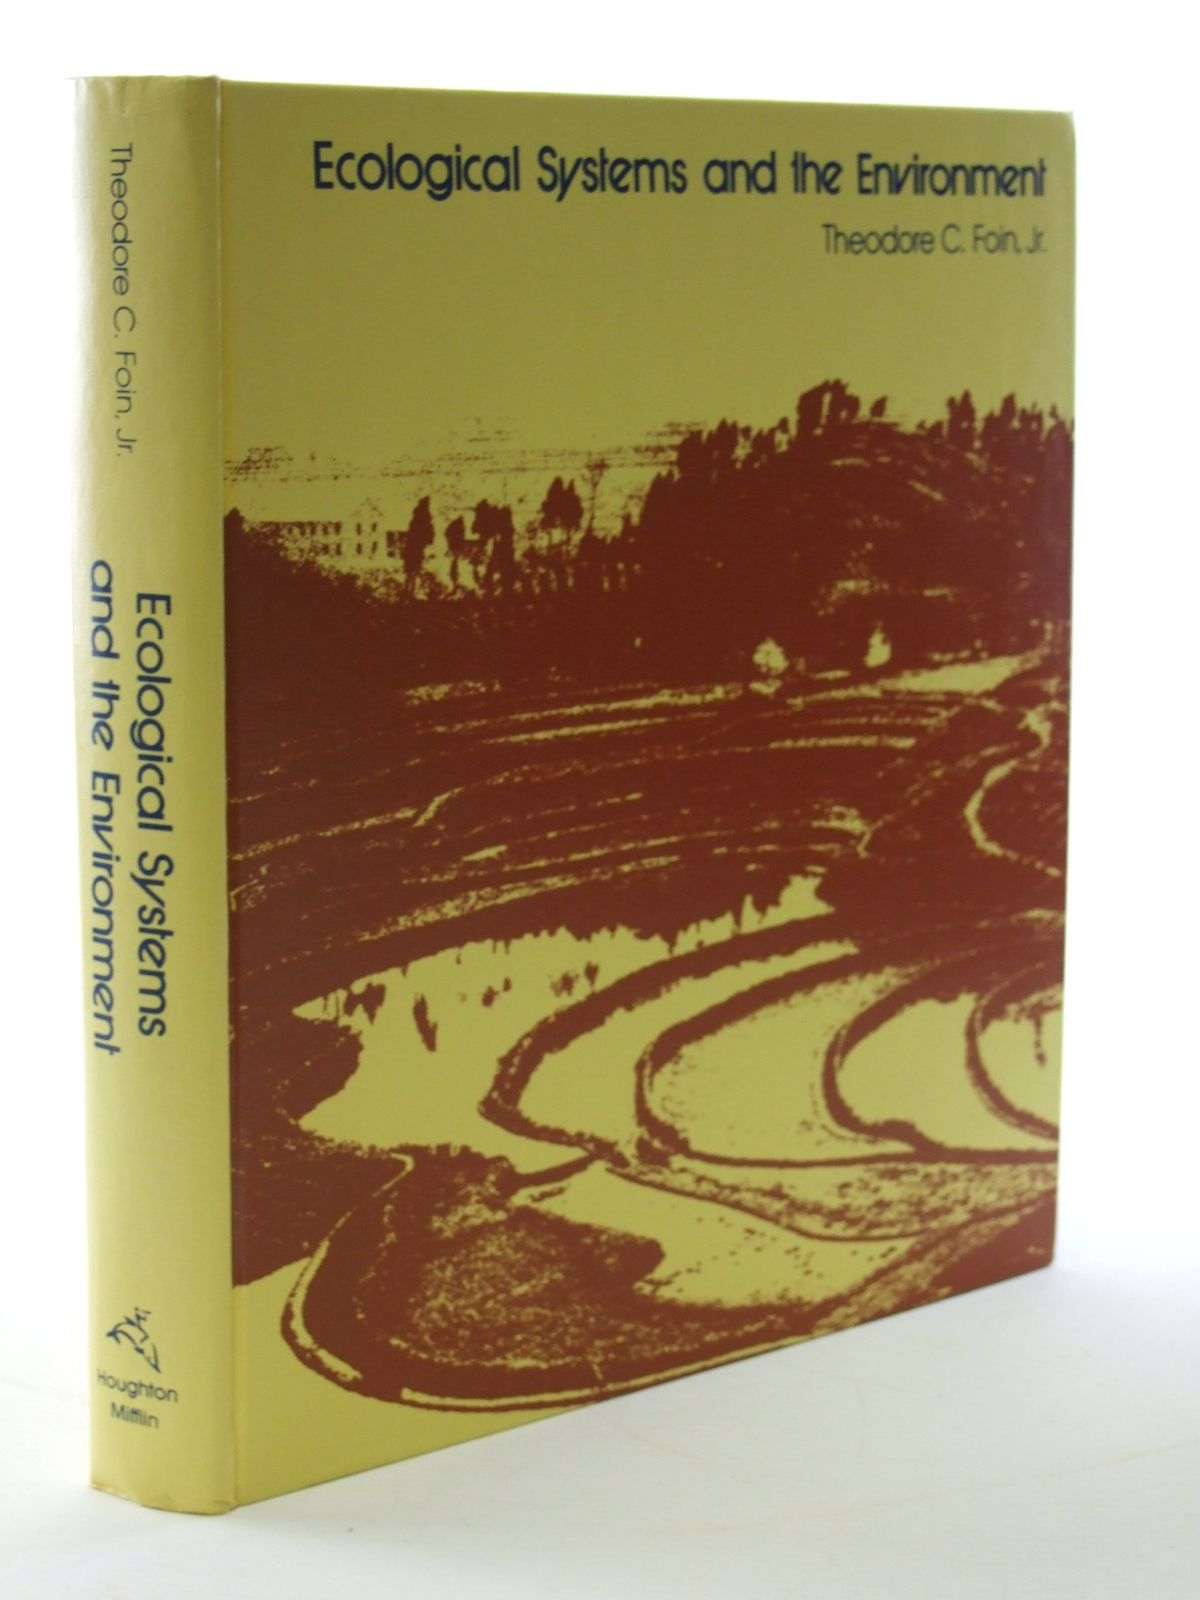 Photo of ECOLOGICAL SYSTEMS AND THE ENVIRONMENT written by Foin, Theordore C. published by Houghton Mifflin Company (STOCK CODE: 1602934)  for sale by Stella & Rose's Books